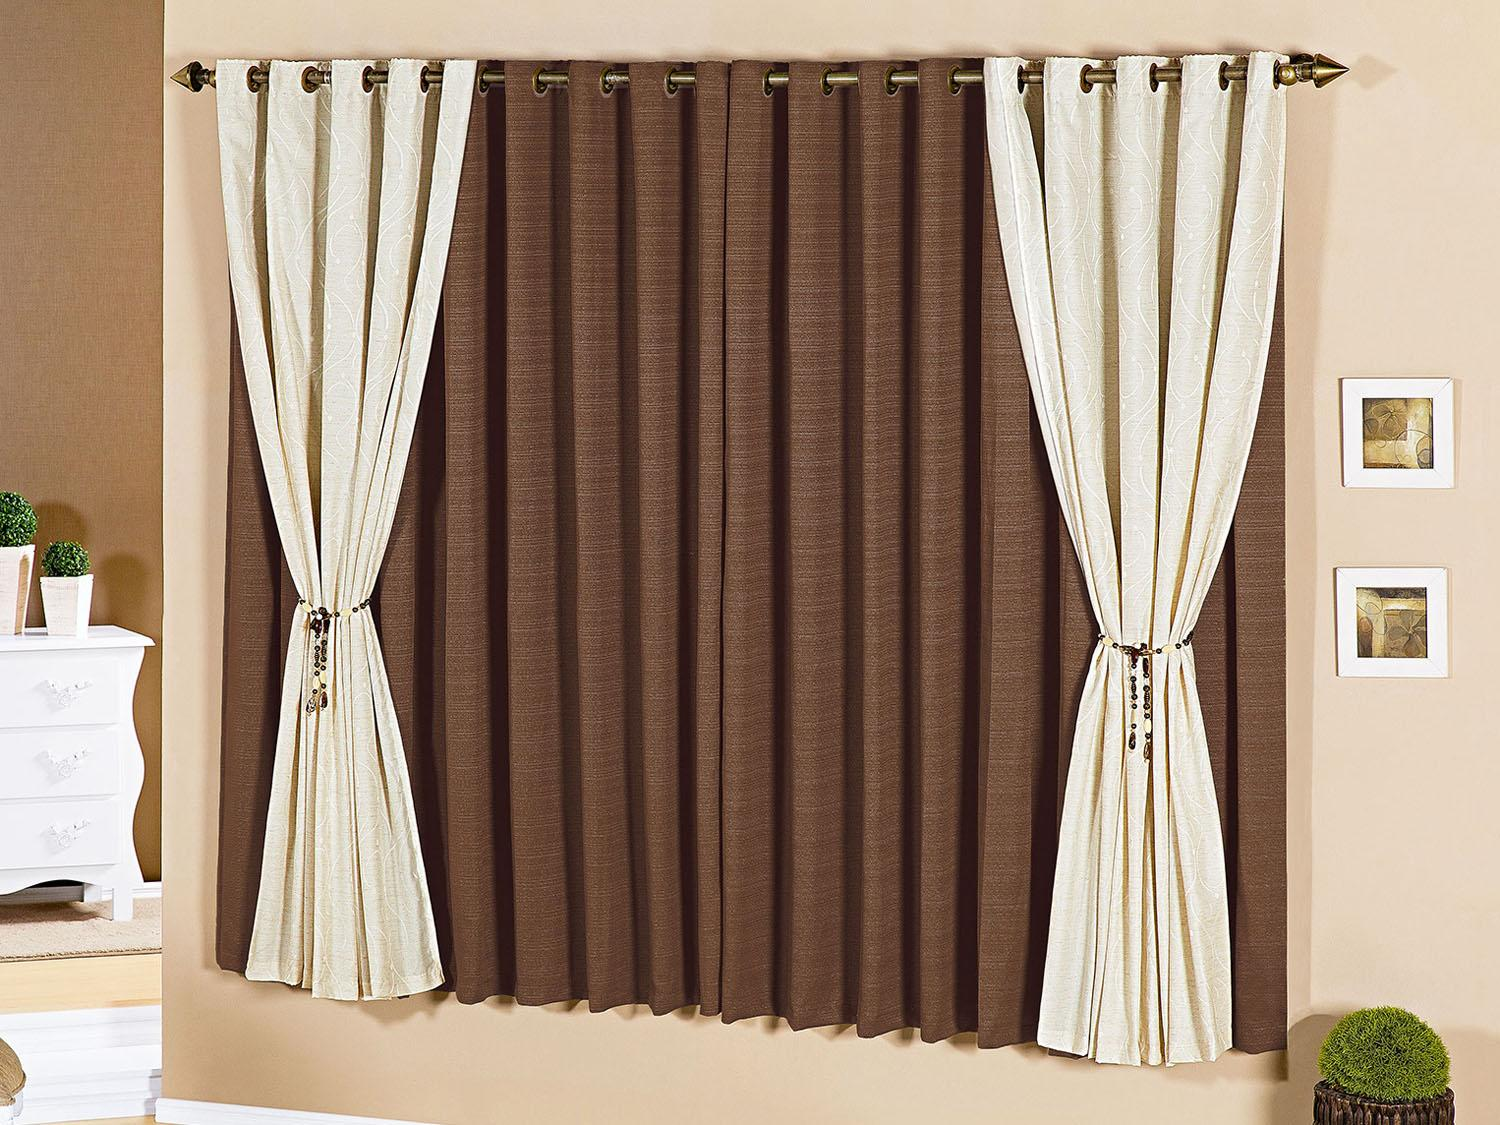 Cortinas koloratex for Ganchos para cortinas de madera